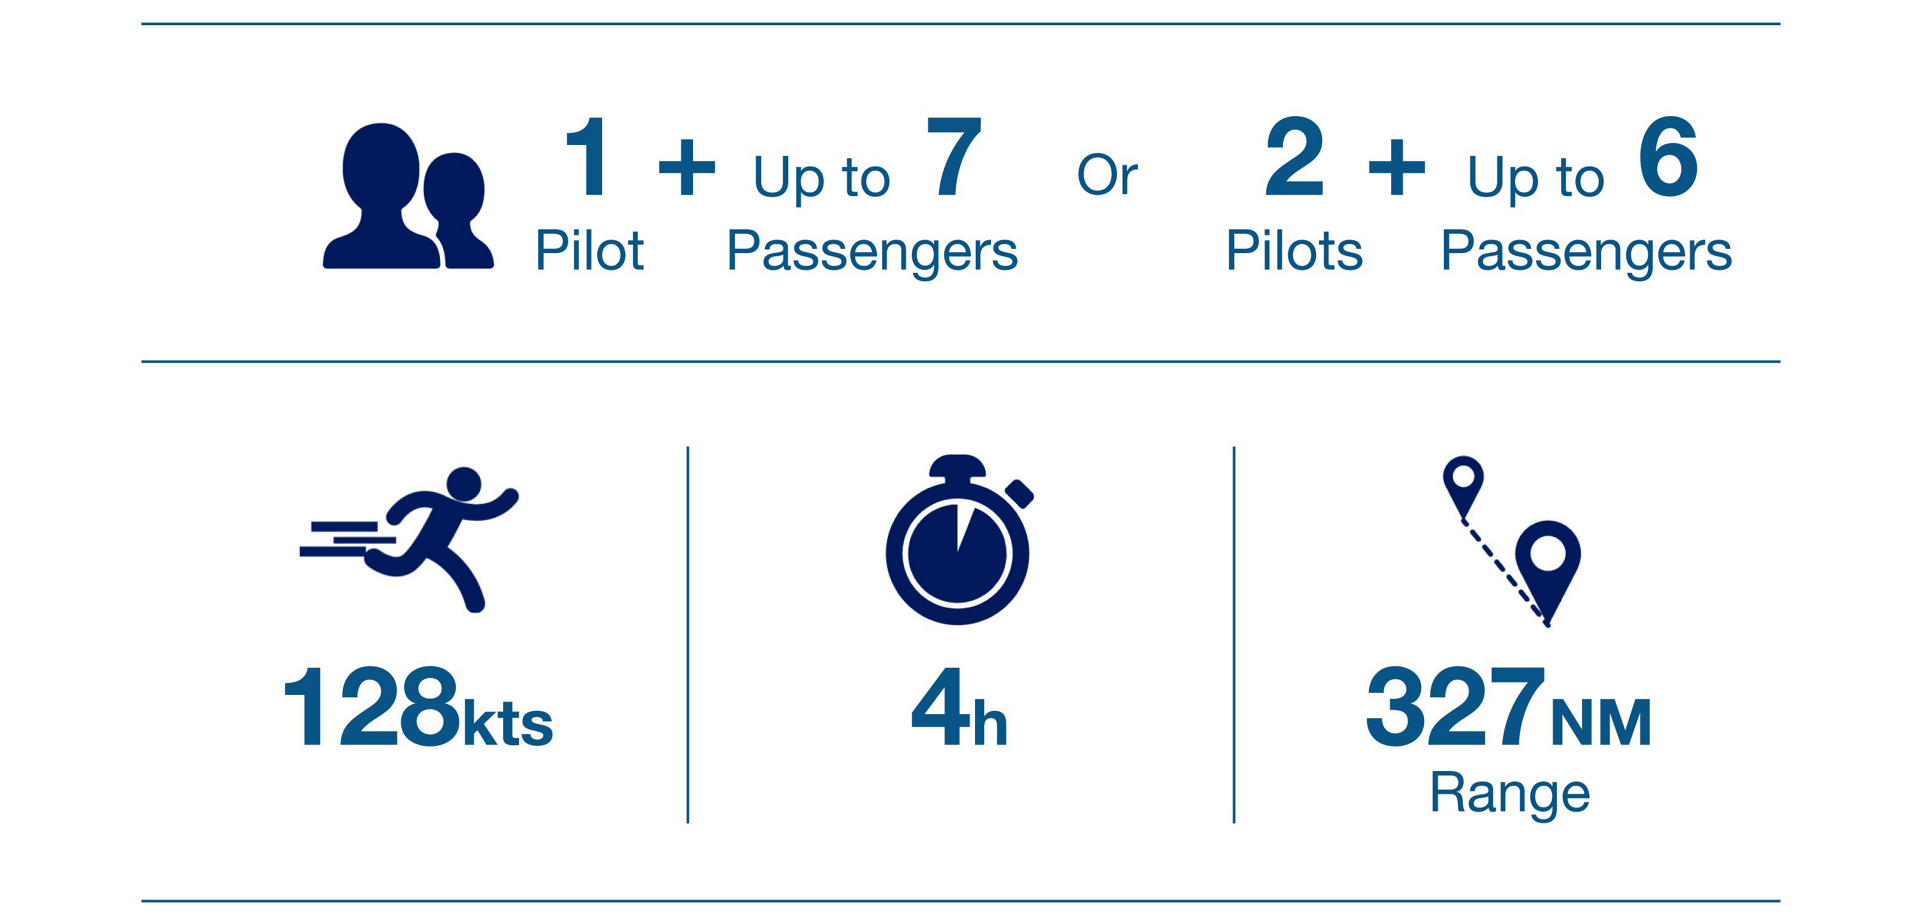 An infographic showing key performance metrics for the Airbus H135 helicopter